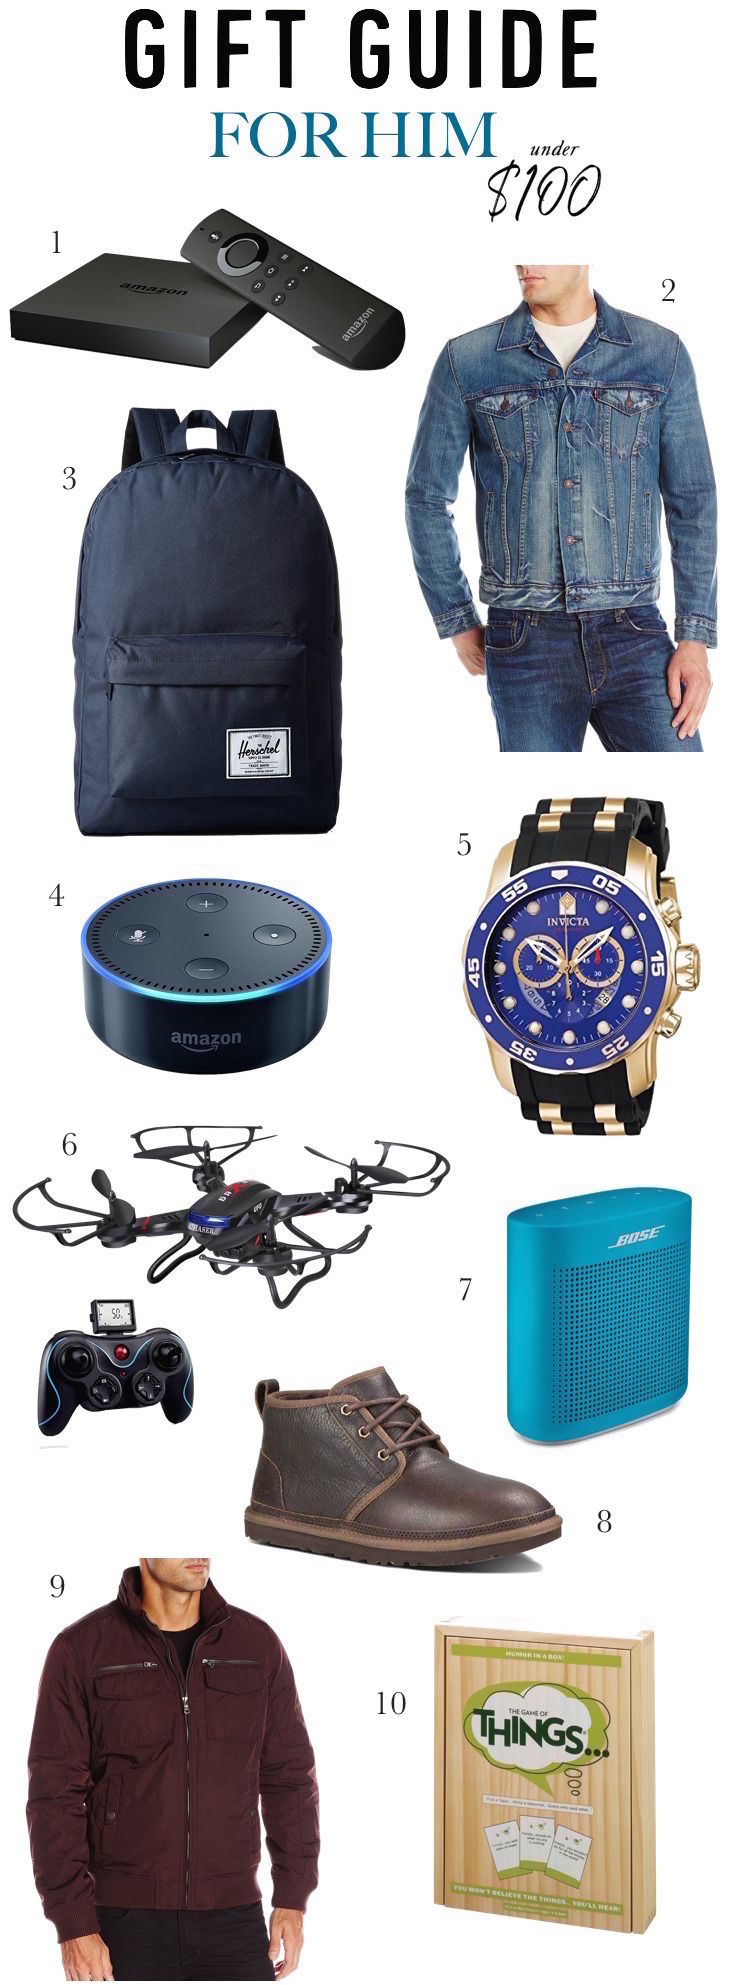 e2ae0036d0 Looking for Christmas gift ideas for your husband, dad, boyfriend or  brother? Click to see 20 stylish, useful and affordable holiday gift ideas  for him that ...